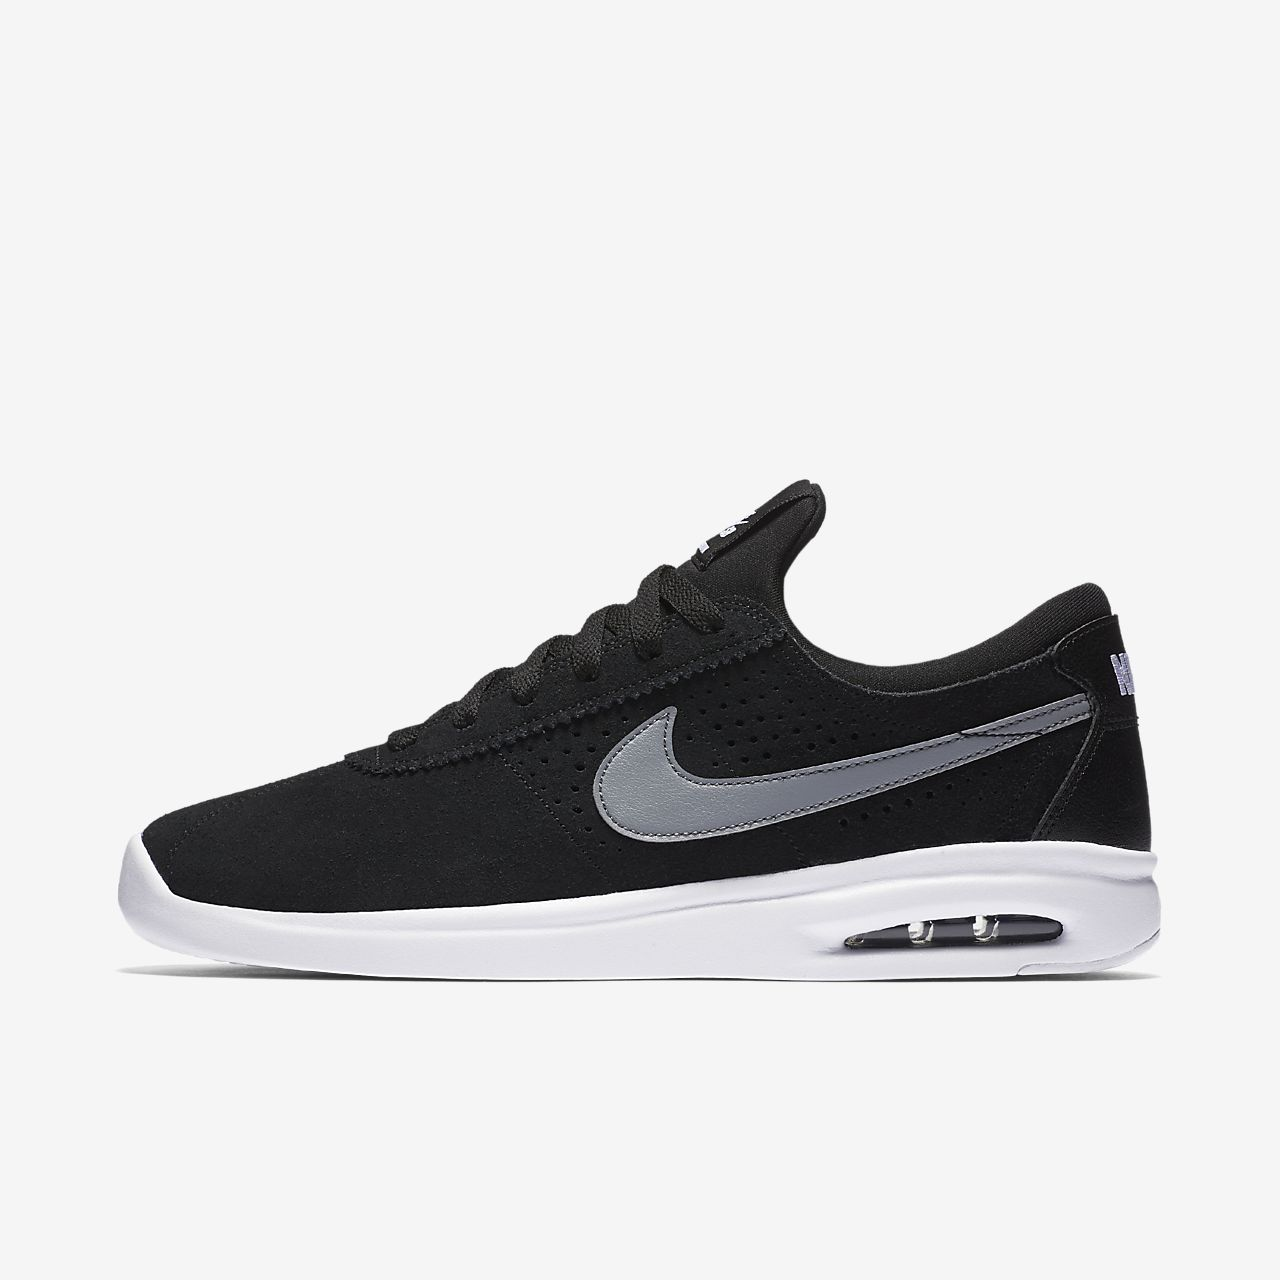 low priced ee7b1 bb85a ... Chaussure de skateboard Nike SB Air Max Bruin Vapor pour Homme